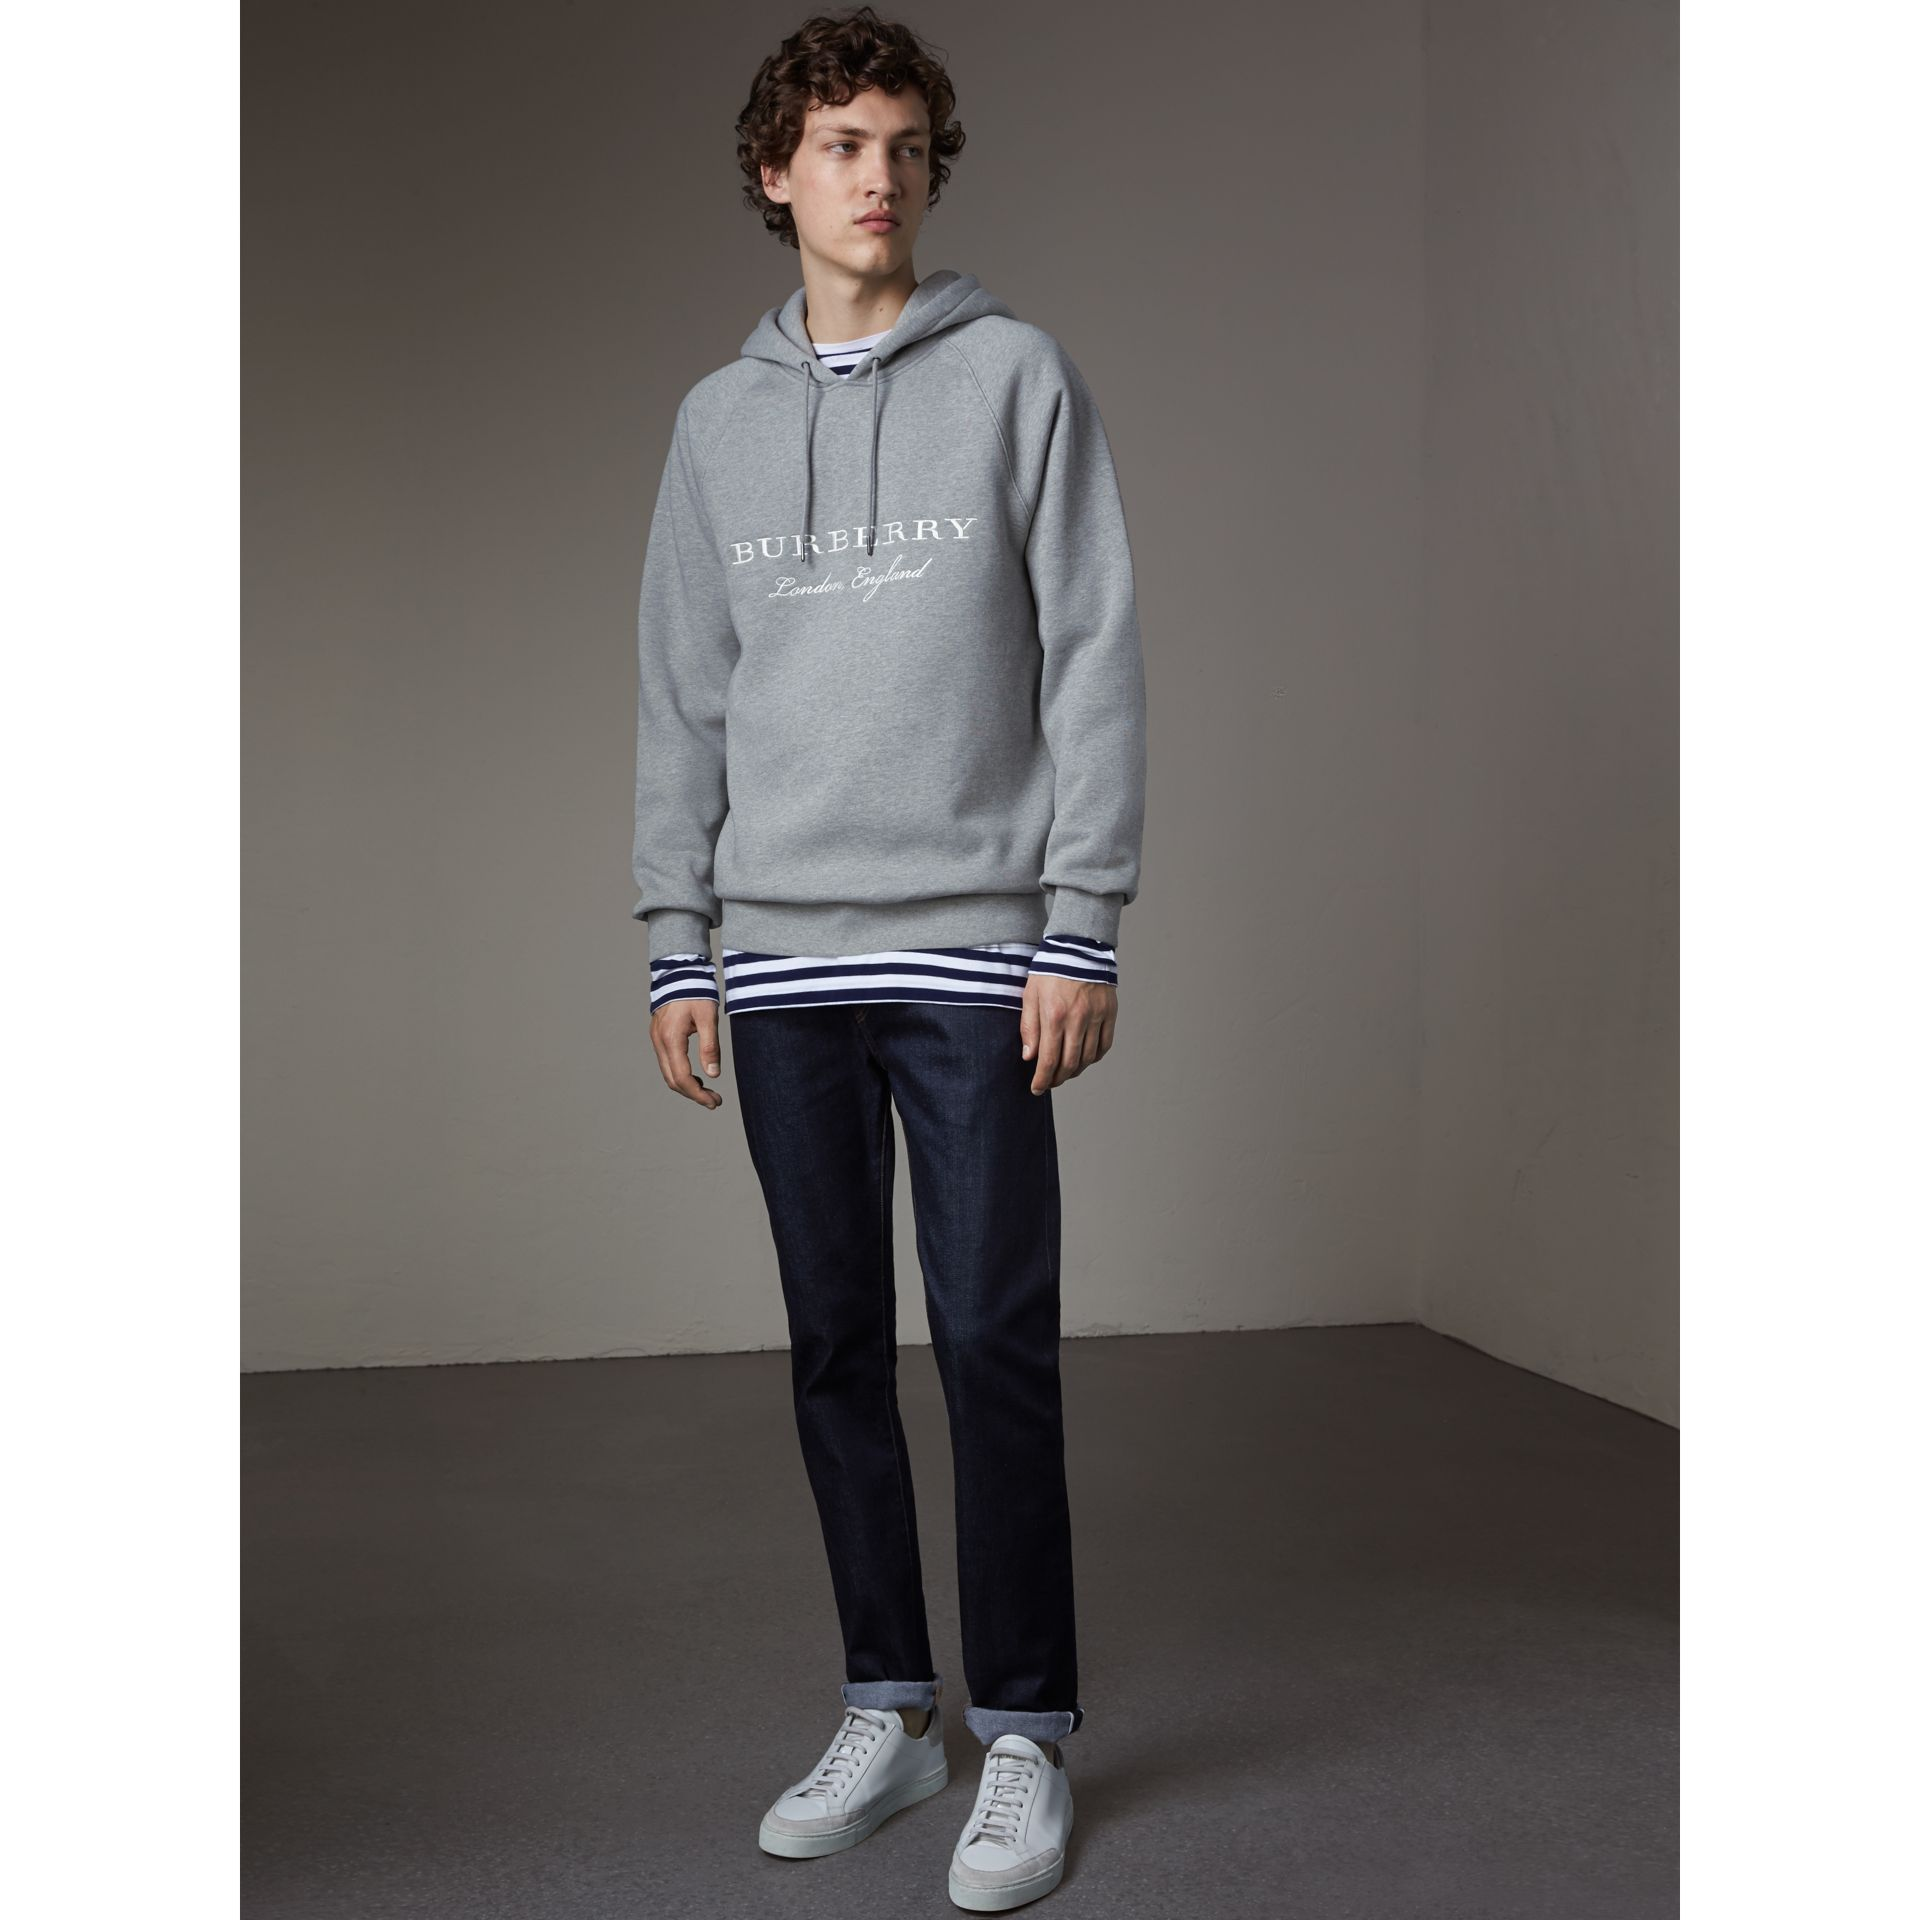 Sweat-shirt brodé à capuche (Camaïeu De Gris) - Homme | Burberry - photo de la galerie 1